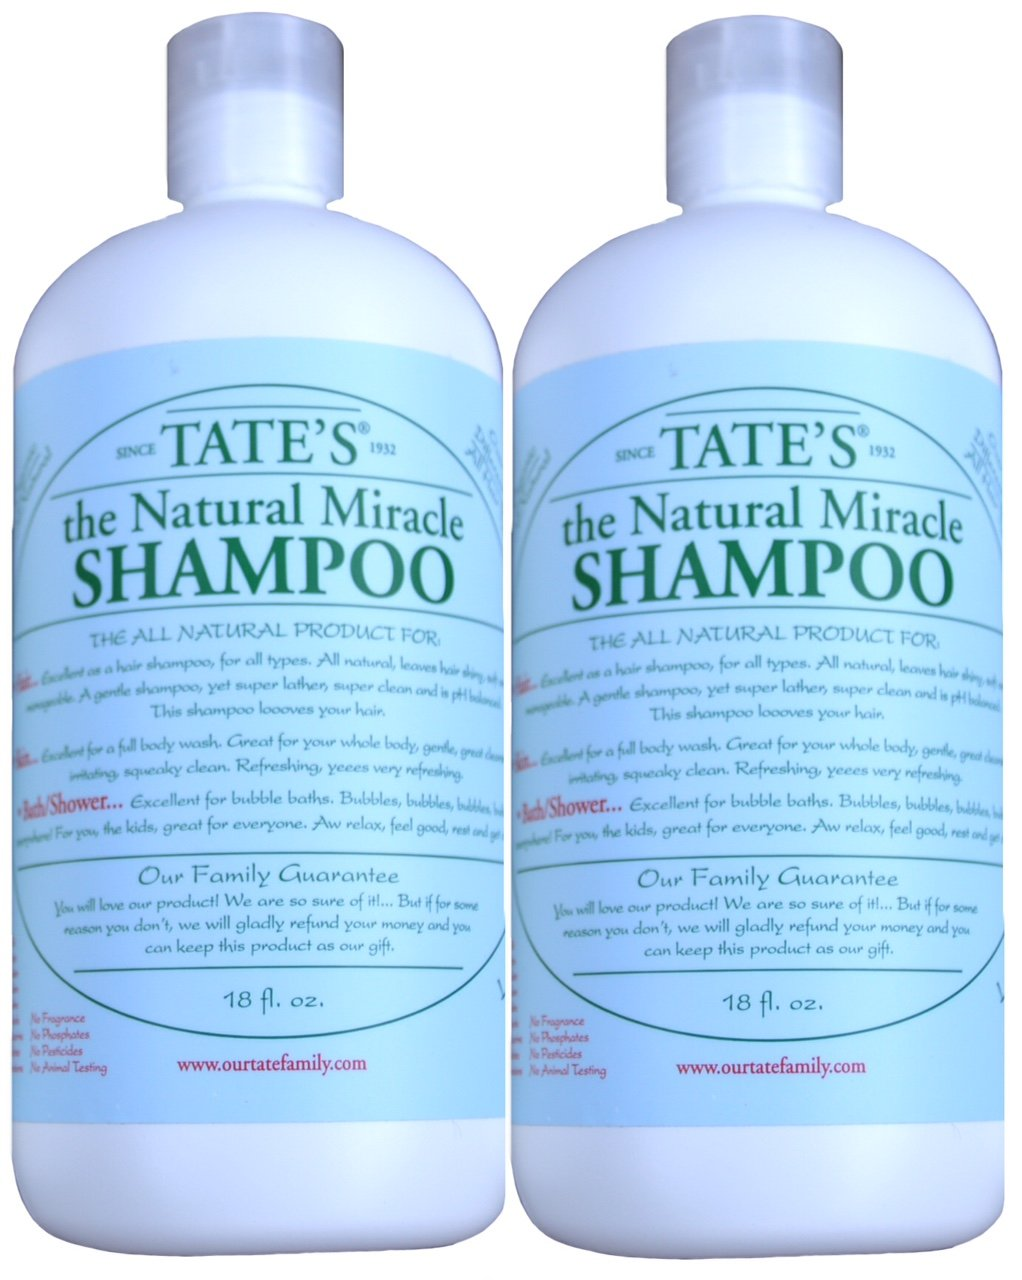 2 Tate's Natural Miracle Shampoo-18oz-/hypo-allergenic